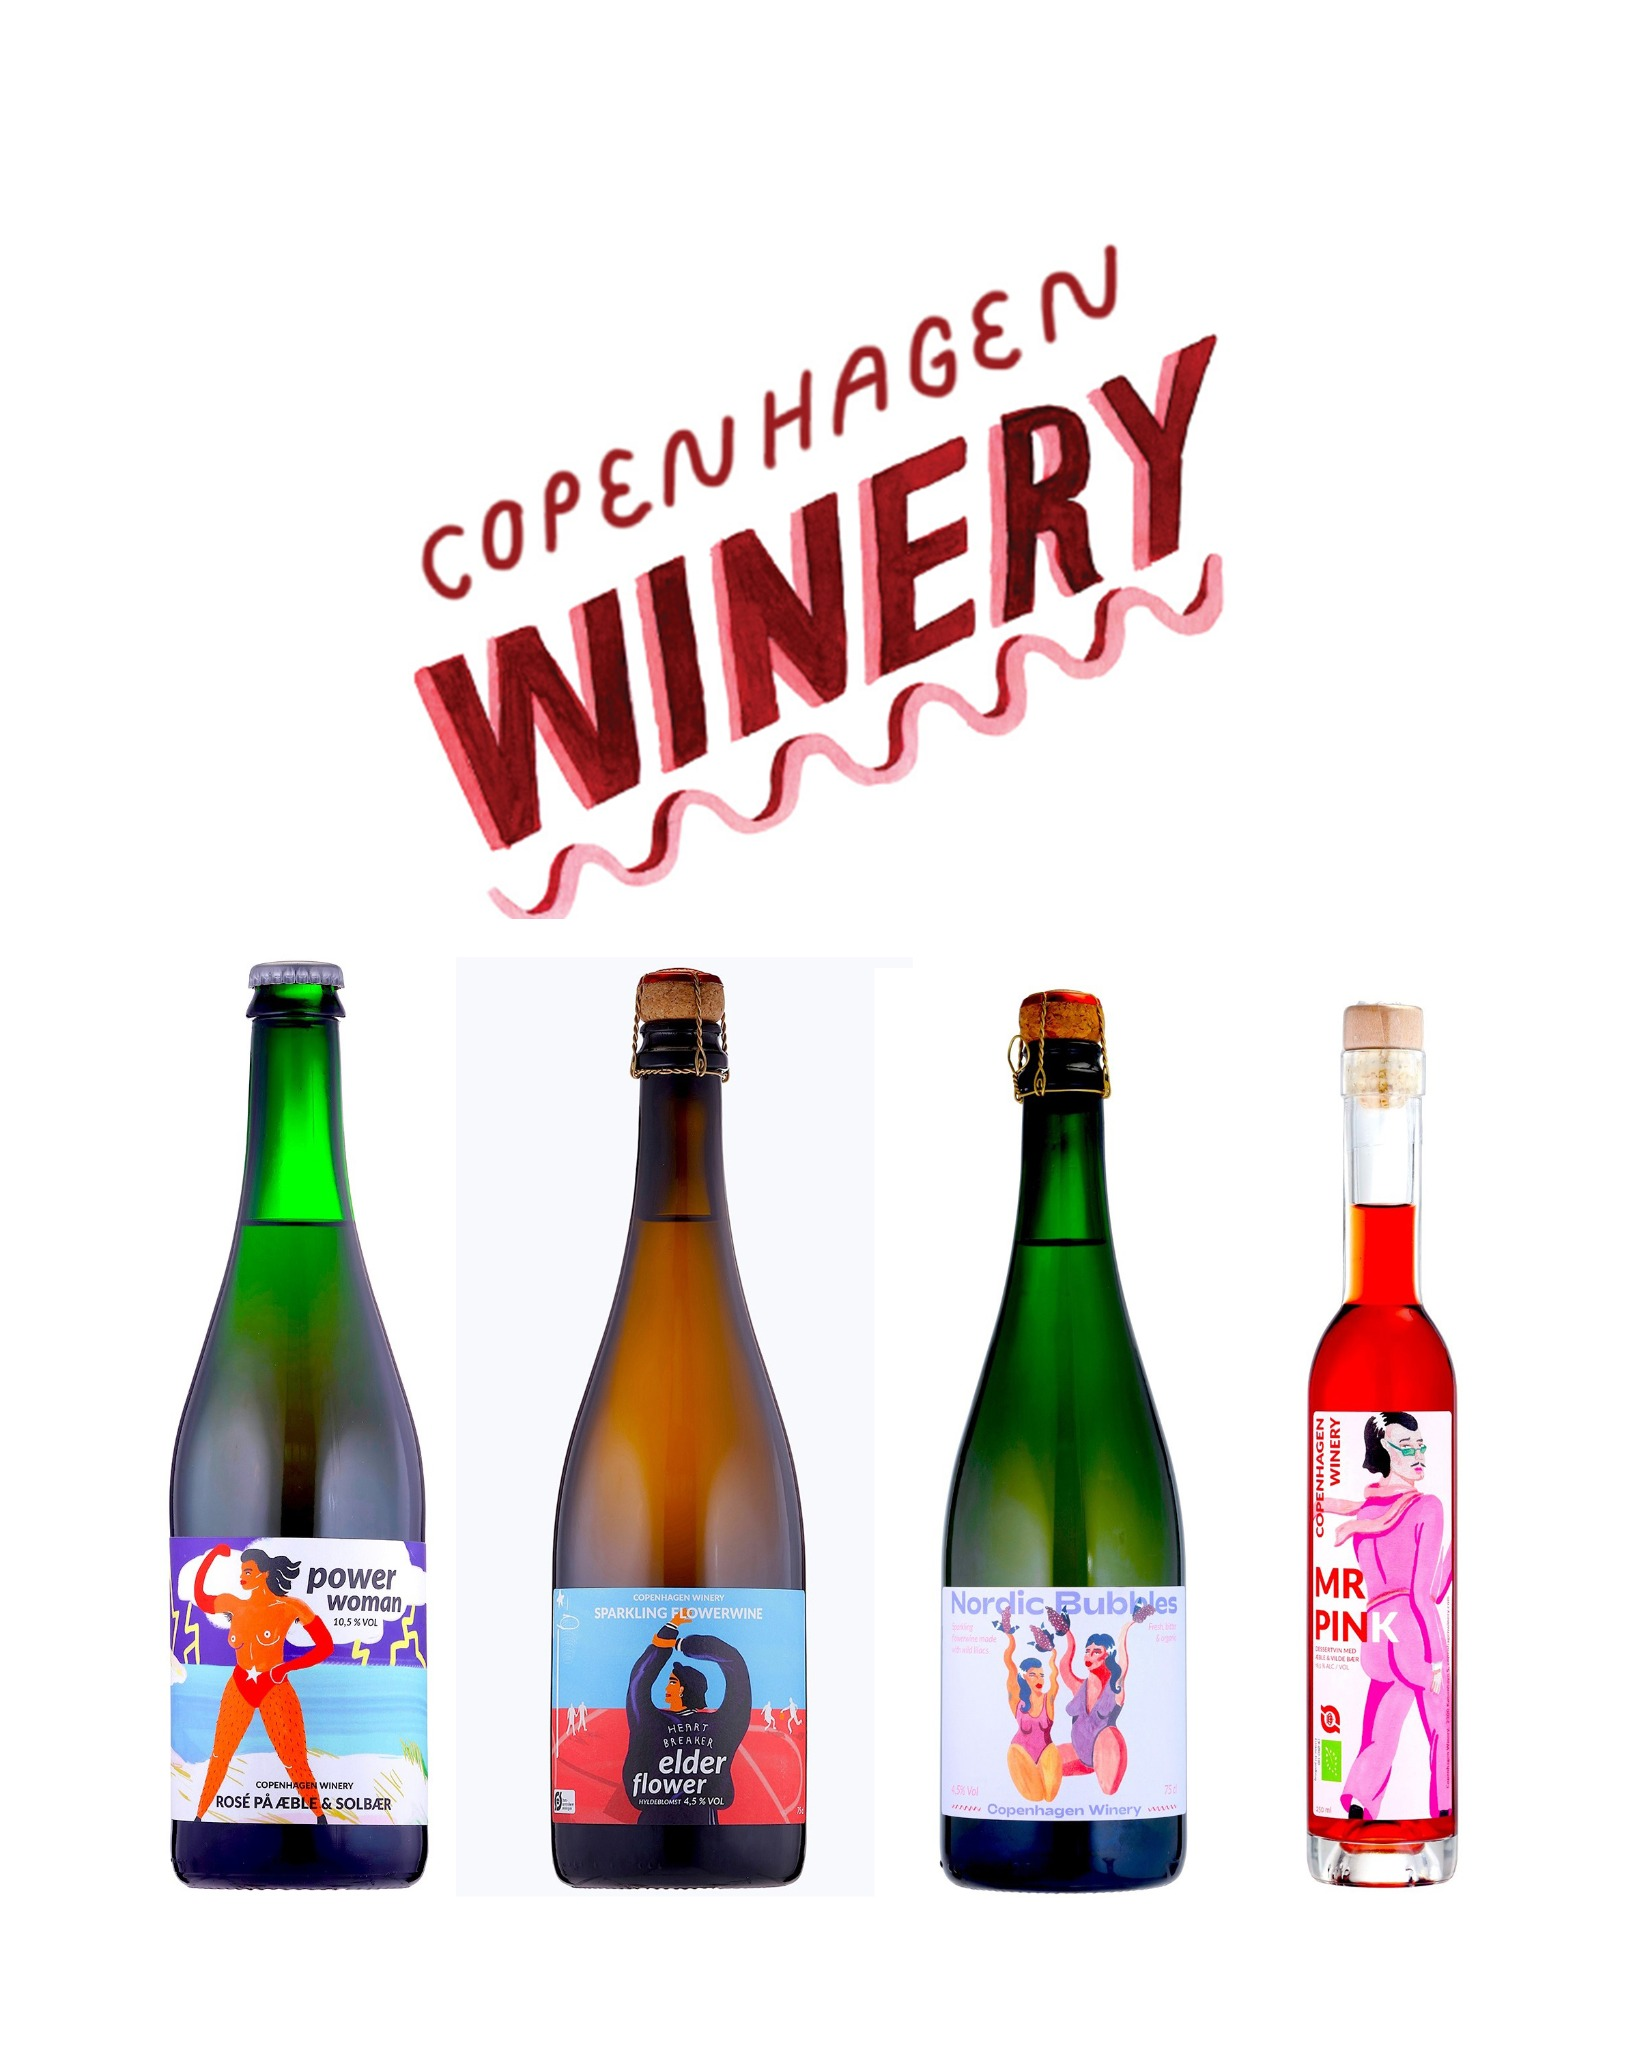 Copenhagen Winery